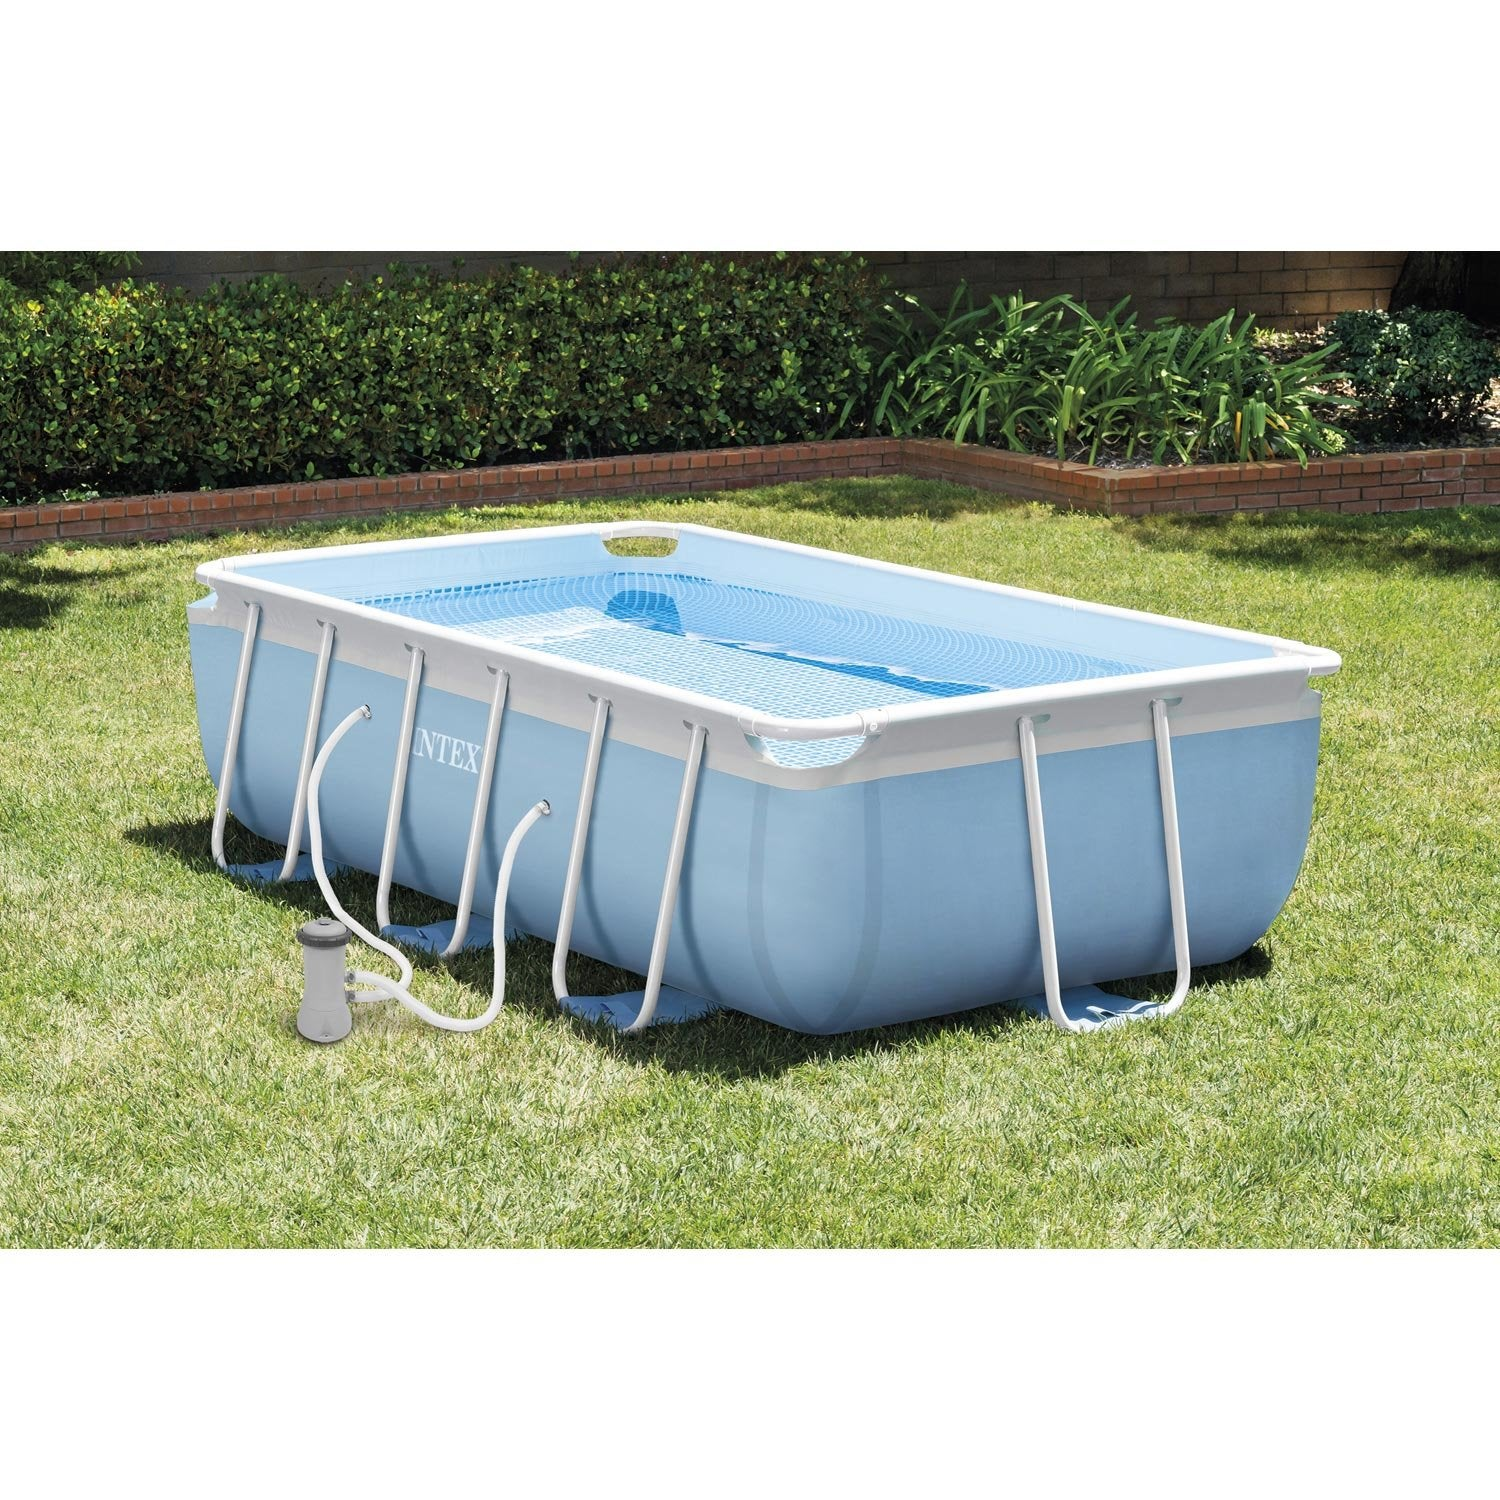 Piscine hors sol autoportante tubulaire intex l 3 4 x l 2 for Piscine intex hors sol